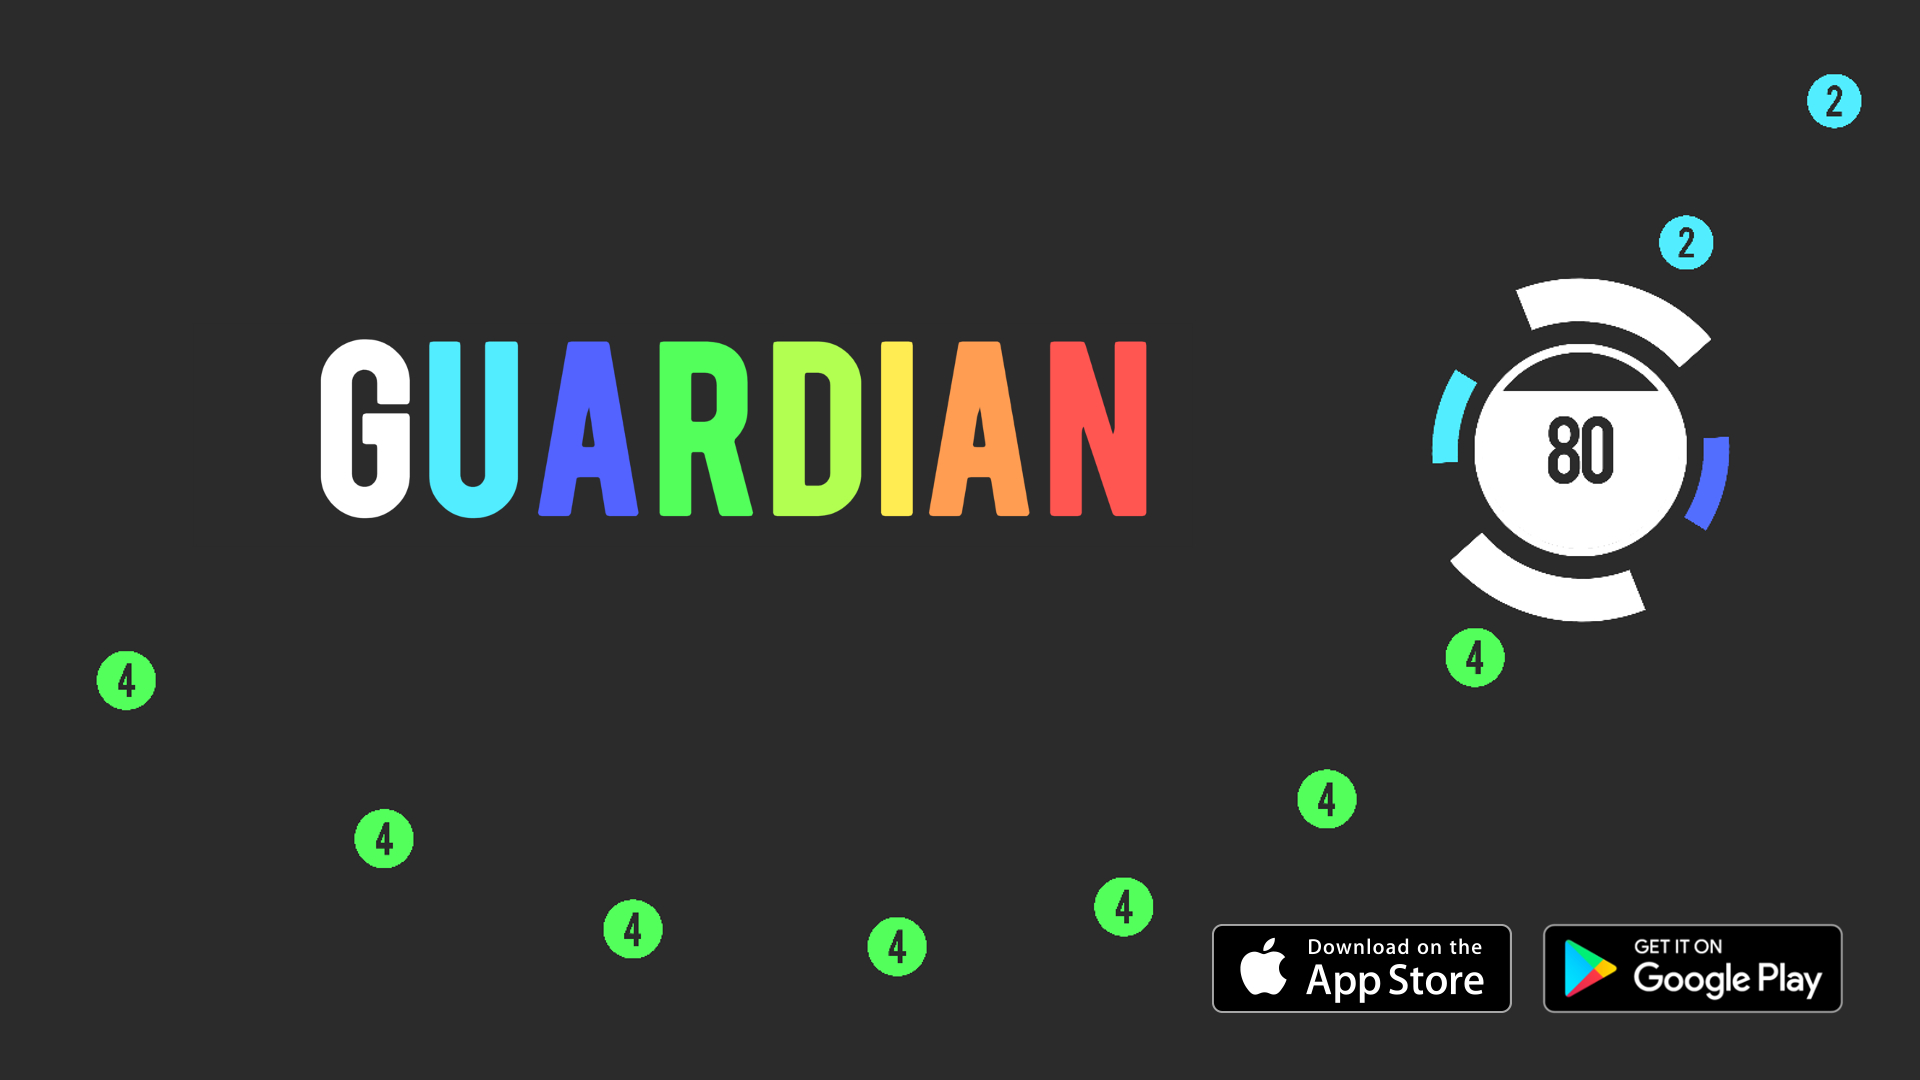 Guardian - Adknown Games